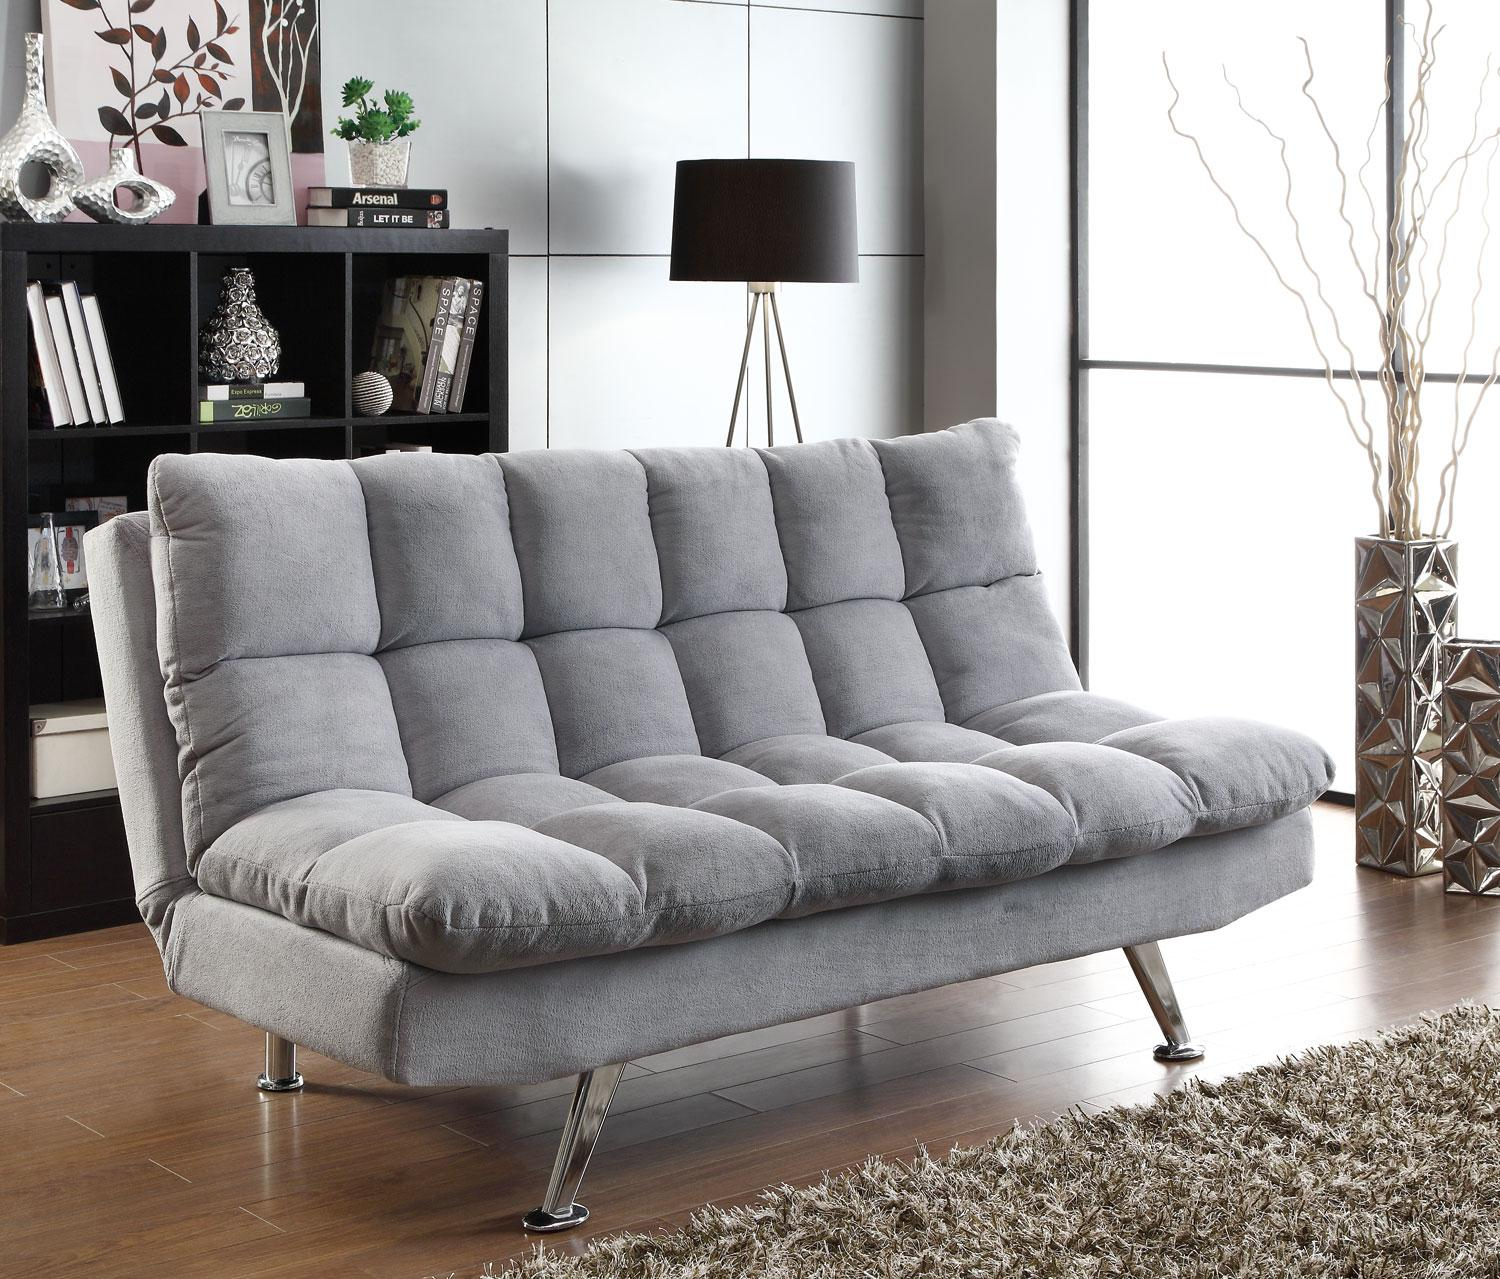 Futons Sofa Bed Sleeper Coaster Furniture 500775 Stores Sale pertaining to Gala Futons And Furniture